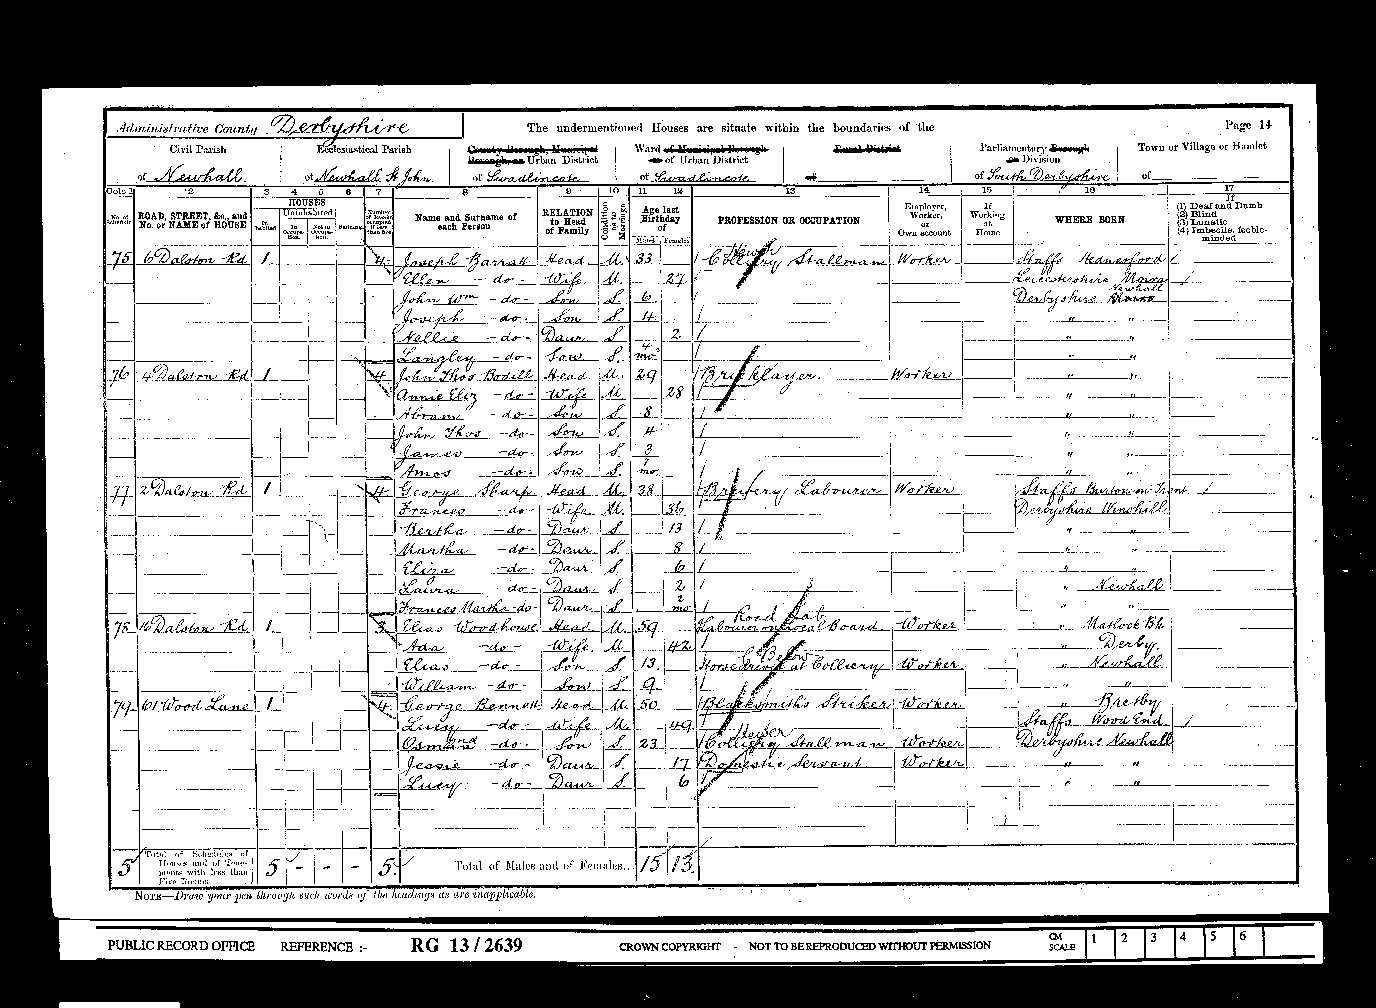 1901 census return showing Elias Woodhouse